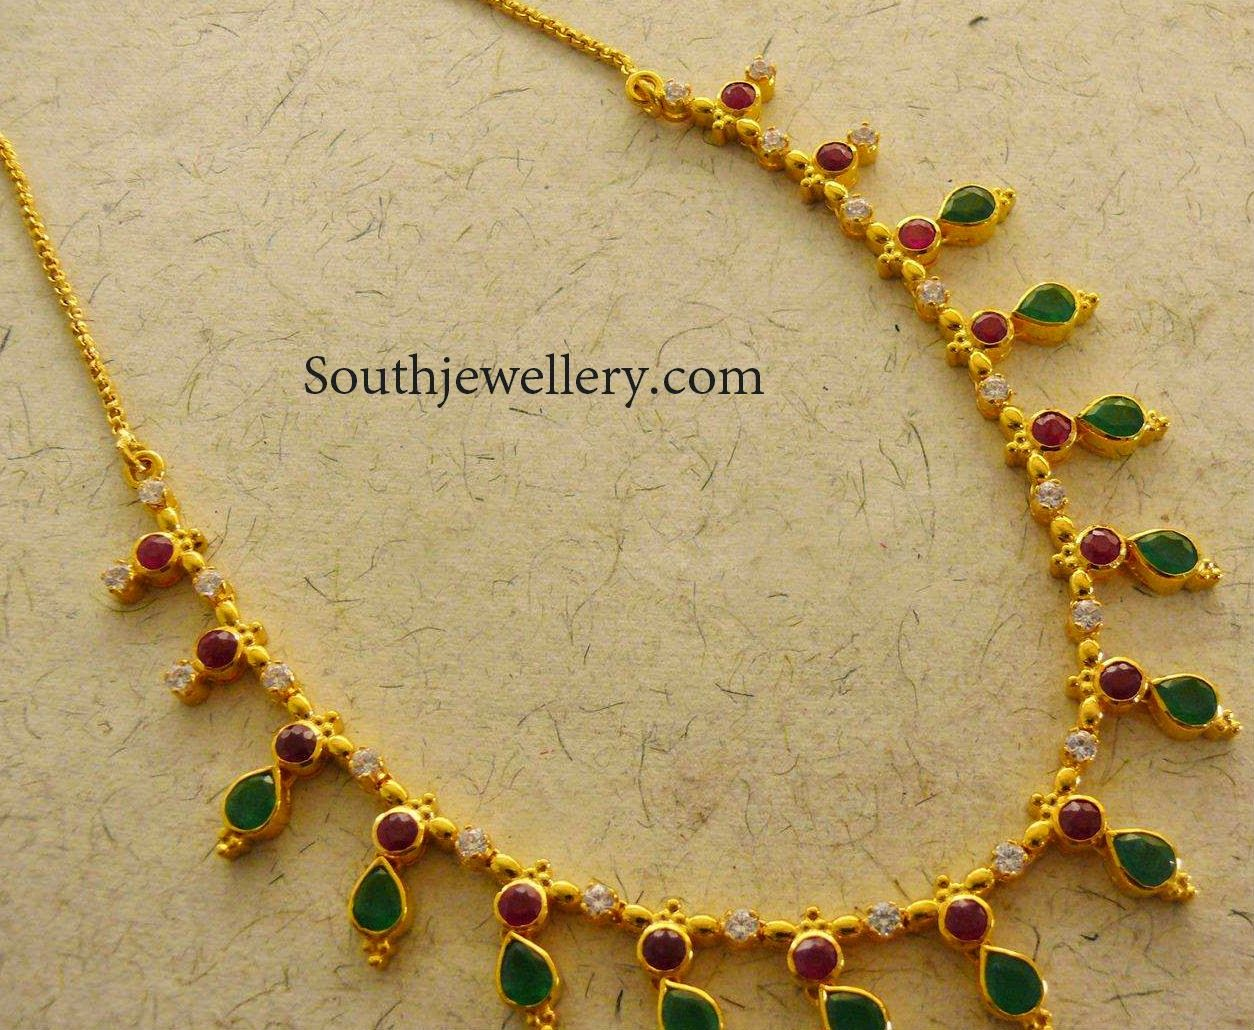 Find This Pin And More On Southjewellery  Latest Indian Jewellery  Designs